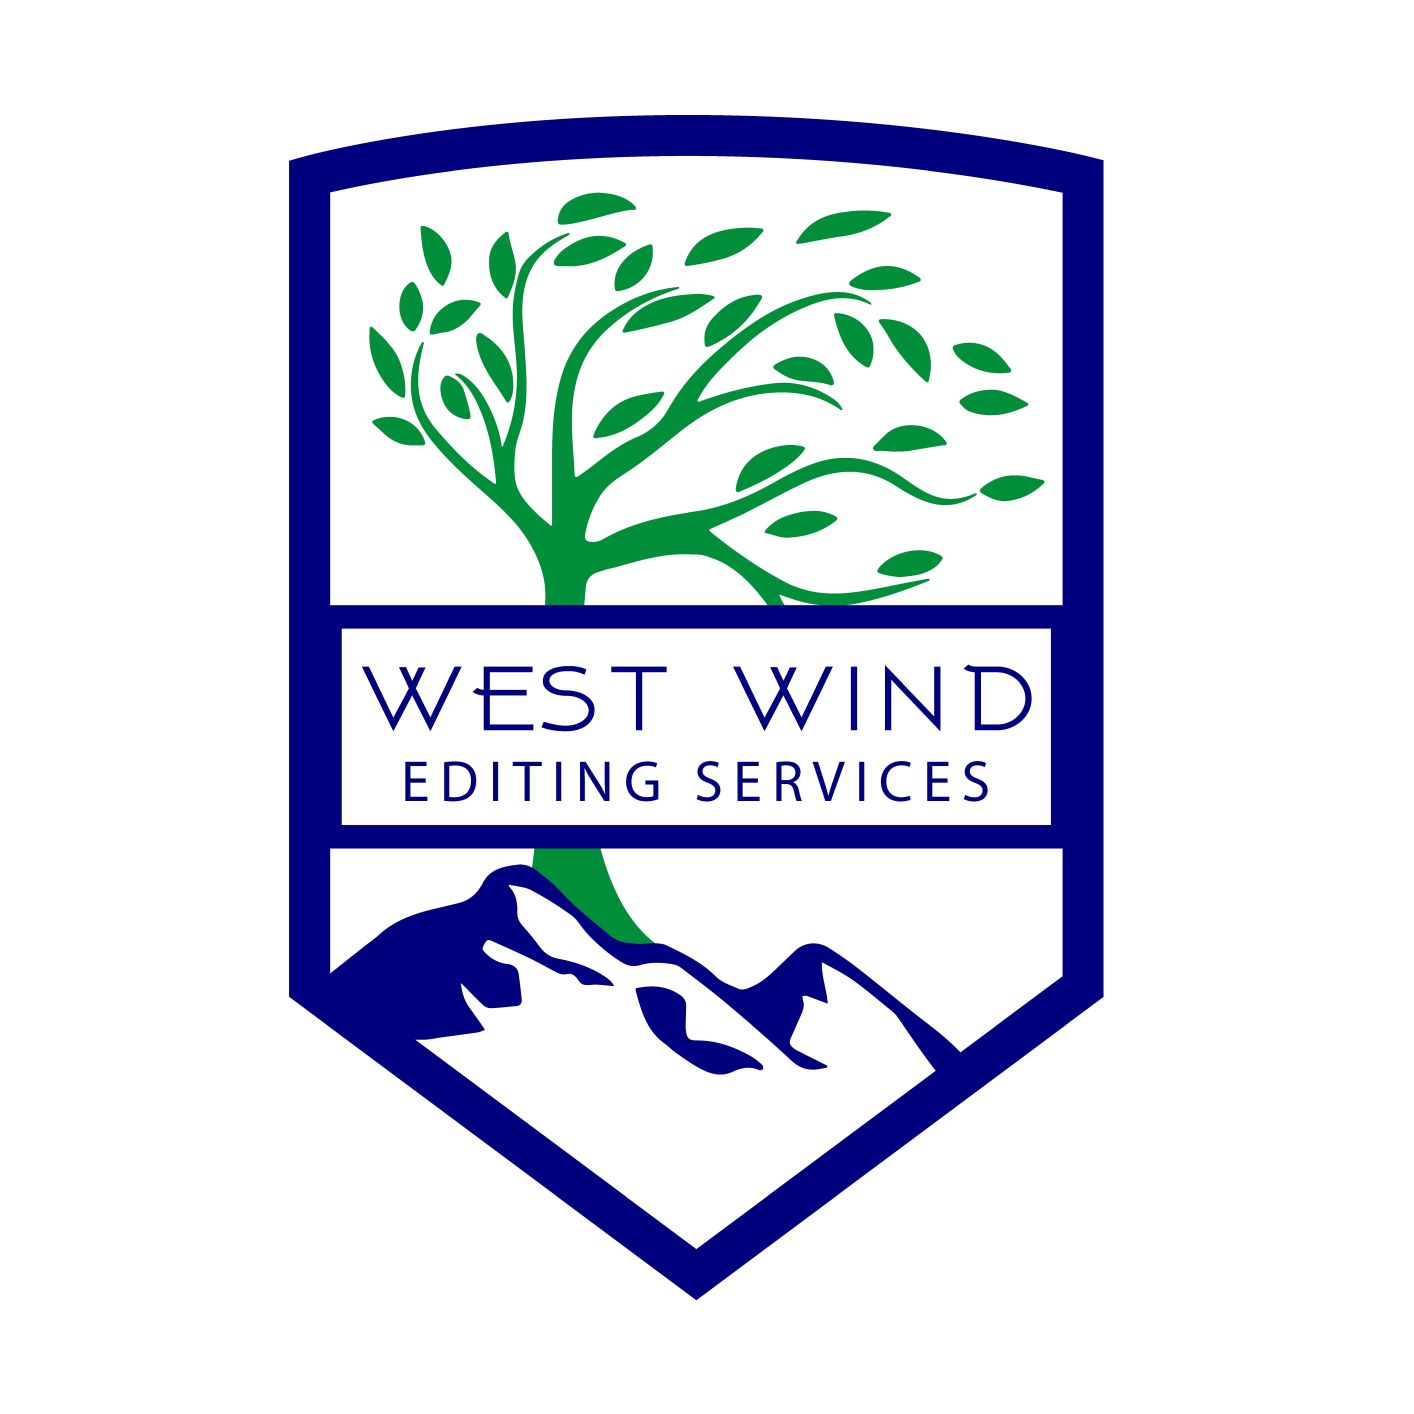 West Wind Editing Services logo